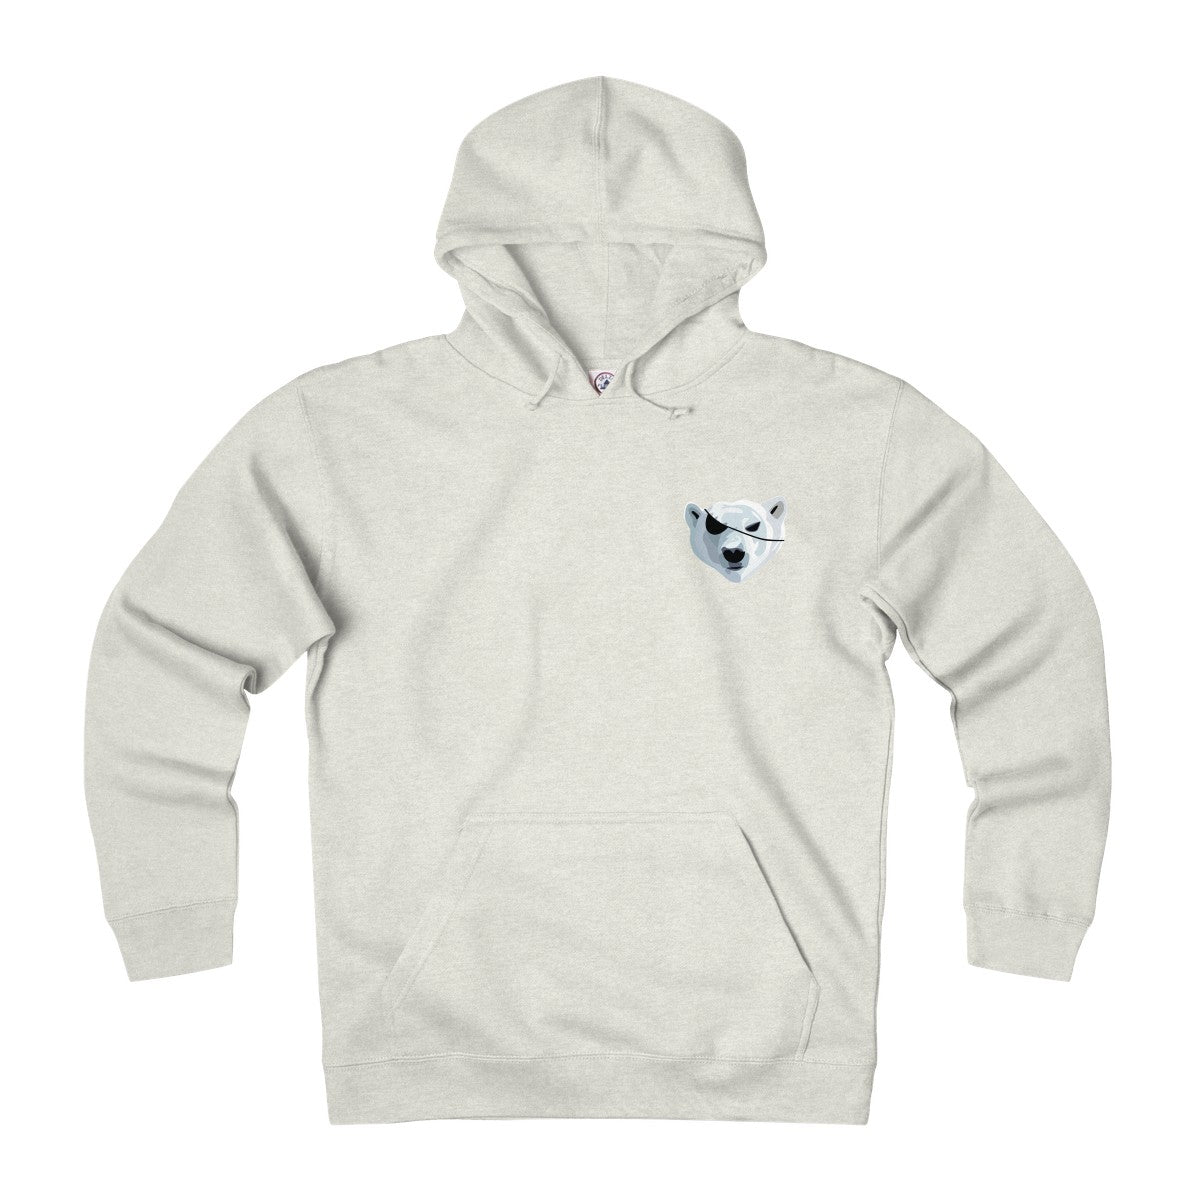 The Pillaging Polar Bear Heavyweight Fleece Hoodie in White – Inverse  Culture 33580e9a0515